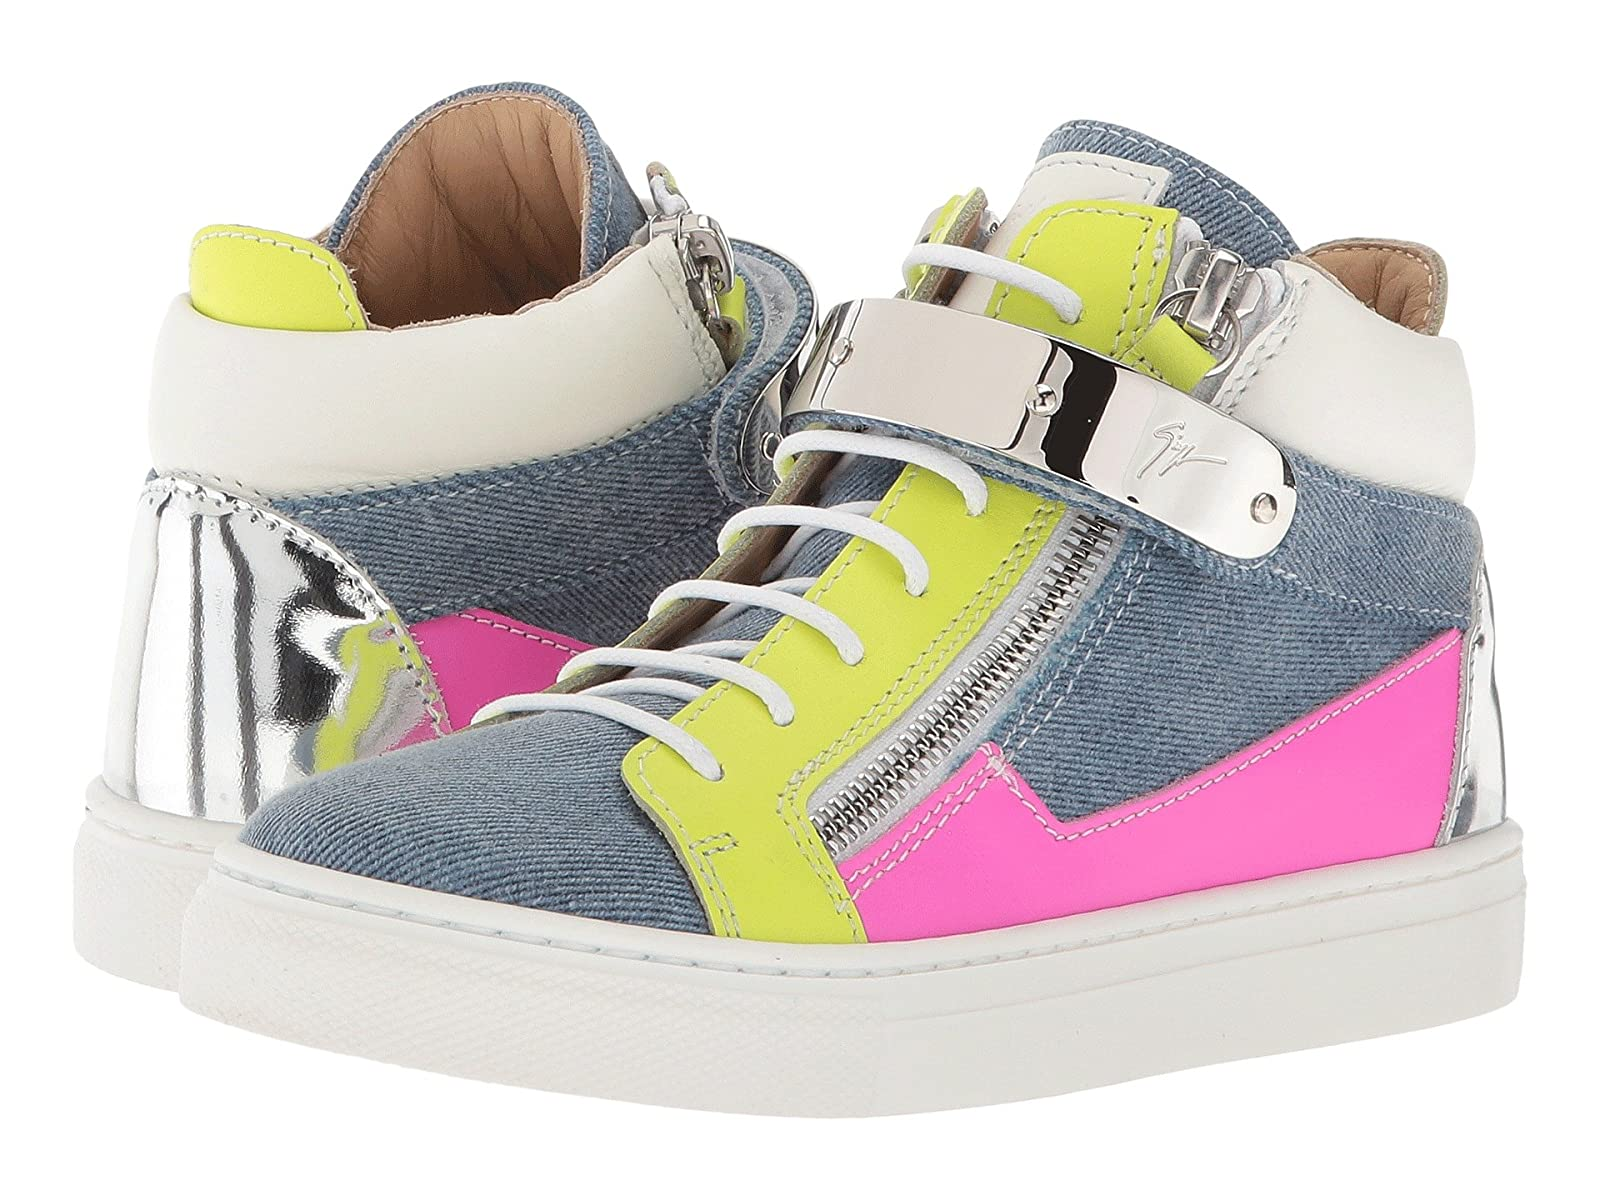 Giuseppe Zanotti Kids Ares Denim Sneaker (Toddler/Little Kid)Cheap and distinctive eye-catching shoes